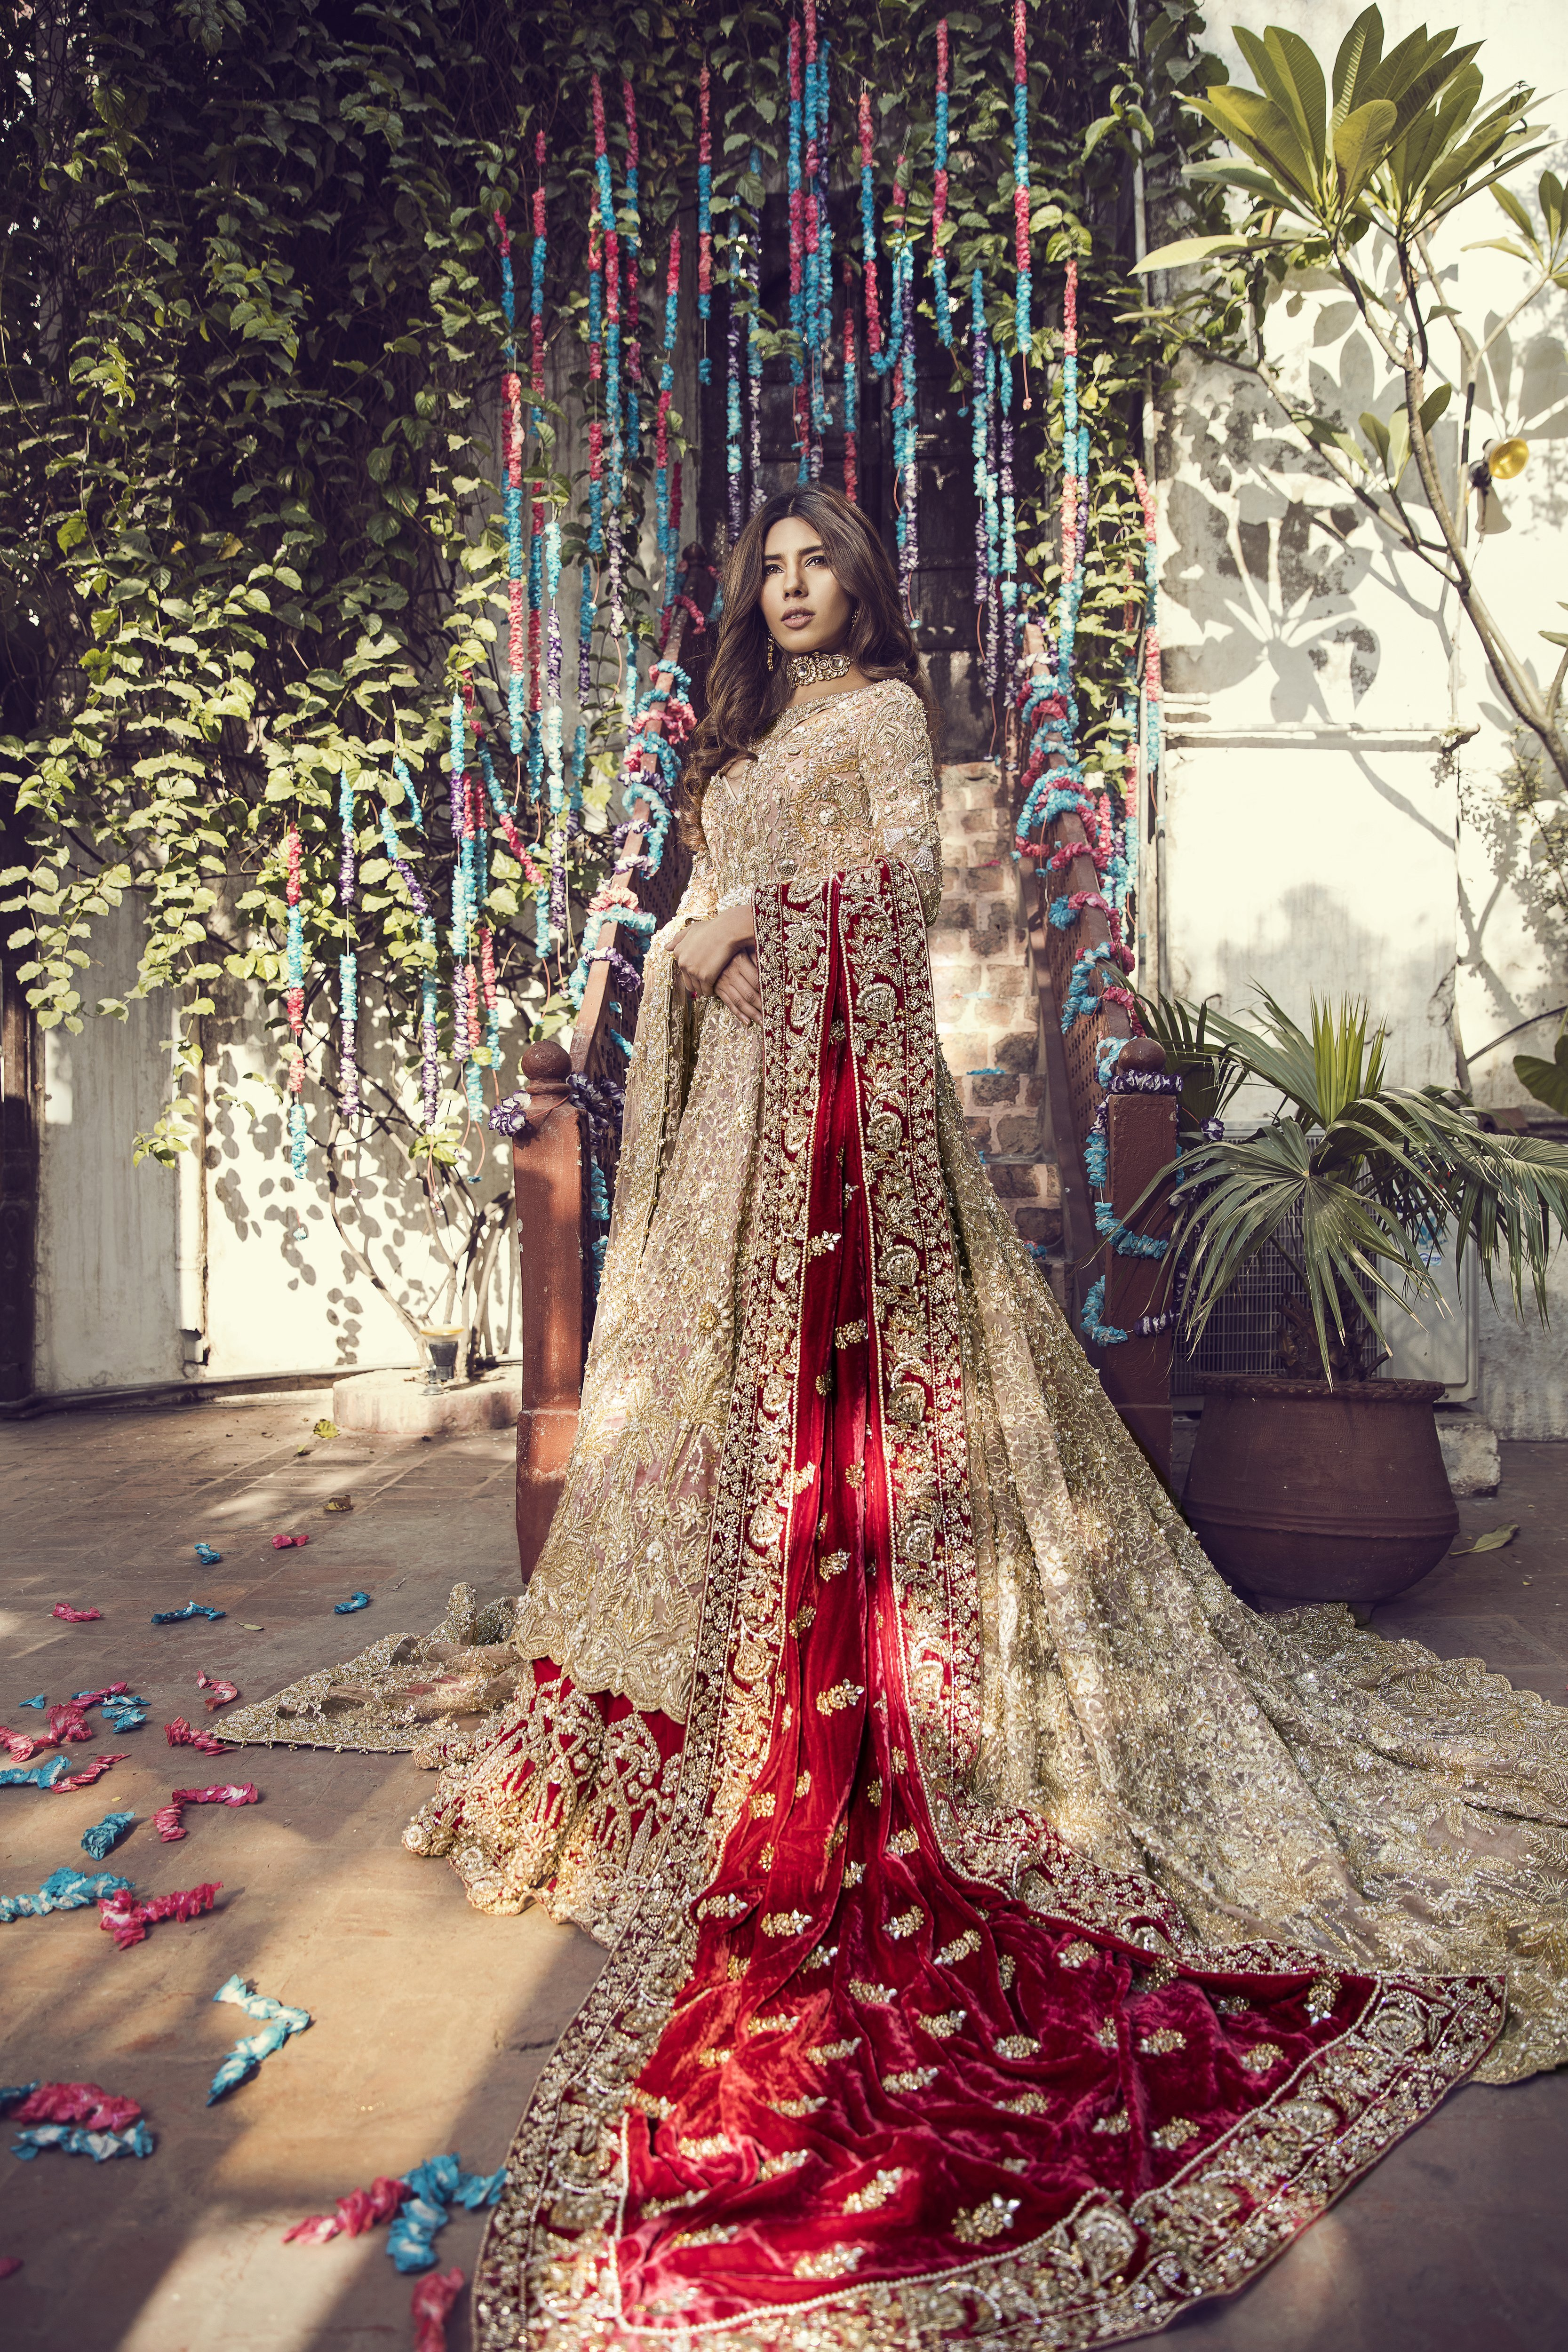 Bridal Dresses In Lahore With Prices – DACC